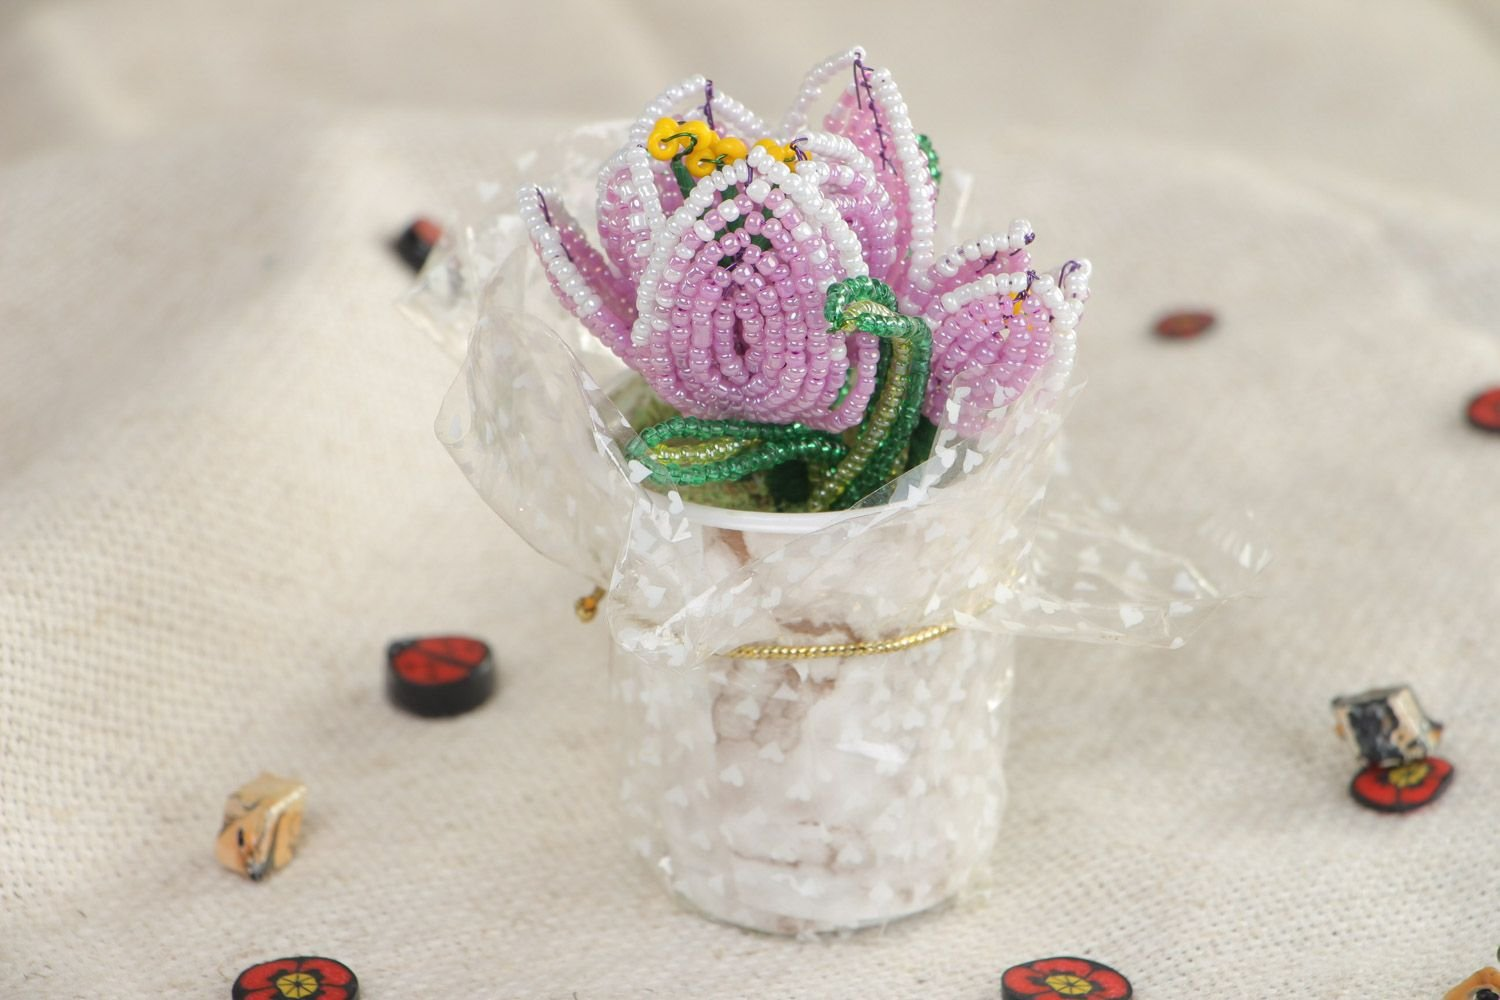 Beautiful-Artificial-Flowers-Hand-Woven-Of-Chinese-Beads-In-The-Shape-Of-Violet-Crocuses